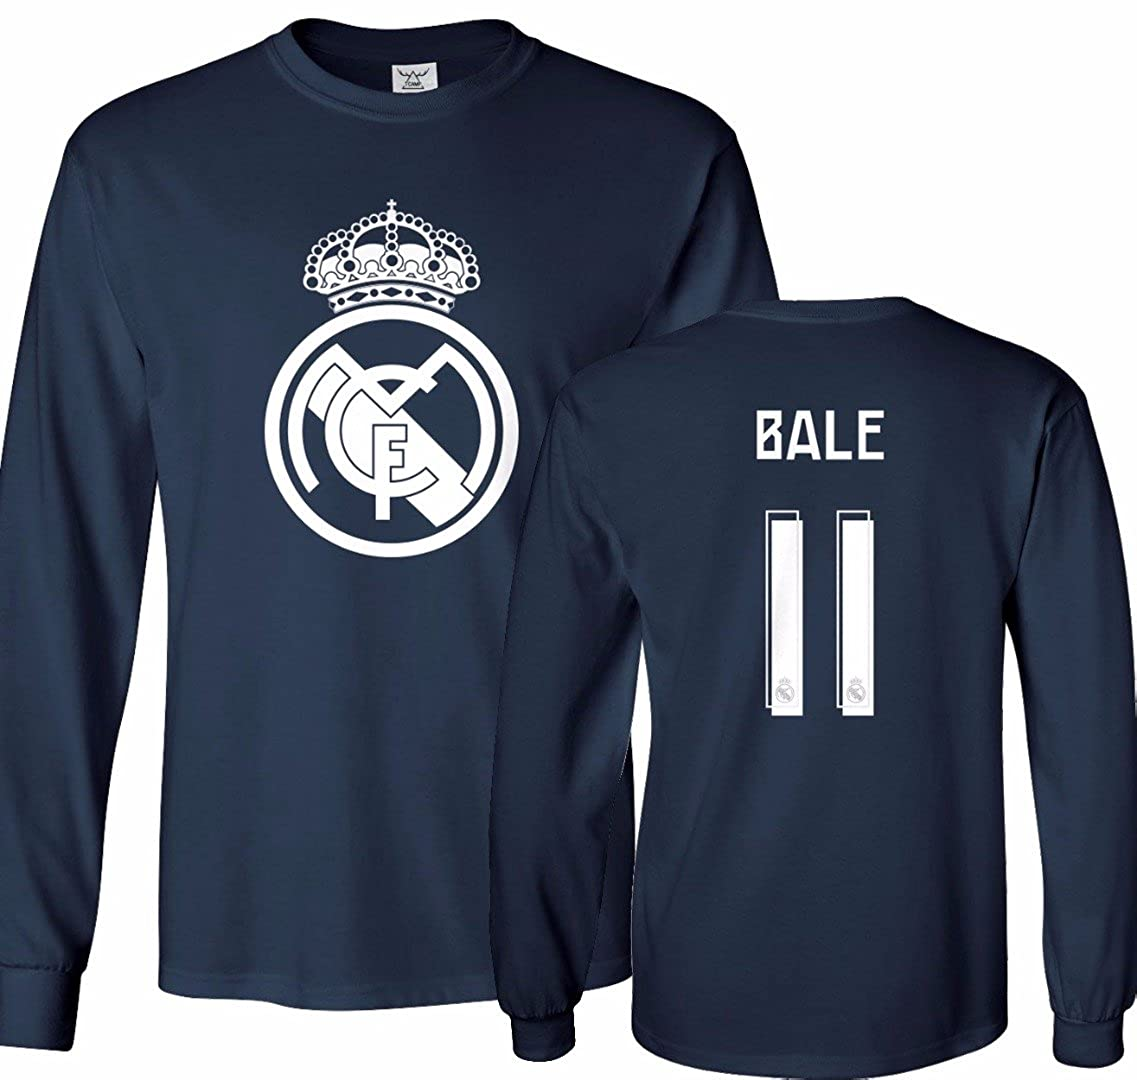 new style 2f639 3ab99 Tcamp Real Madrid Shirt Gareth Bale #11 Jersey Men's Long Sleeve T-shirt